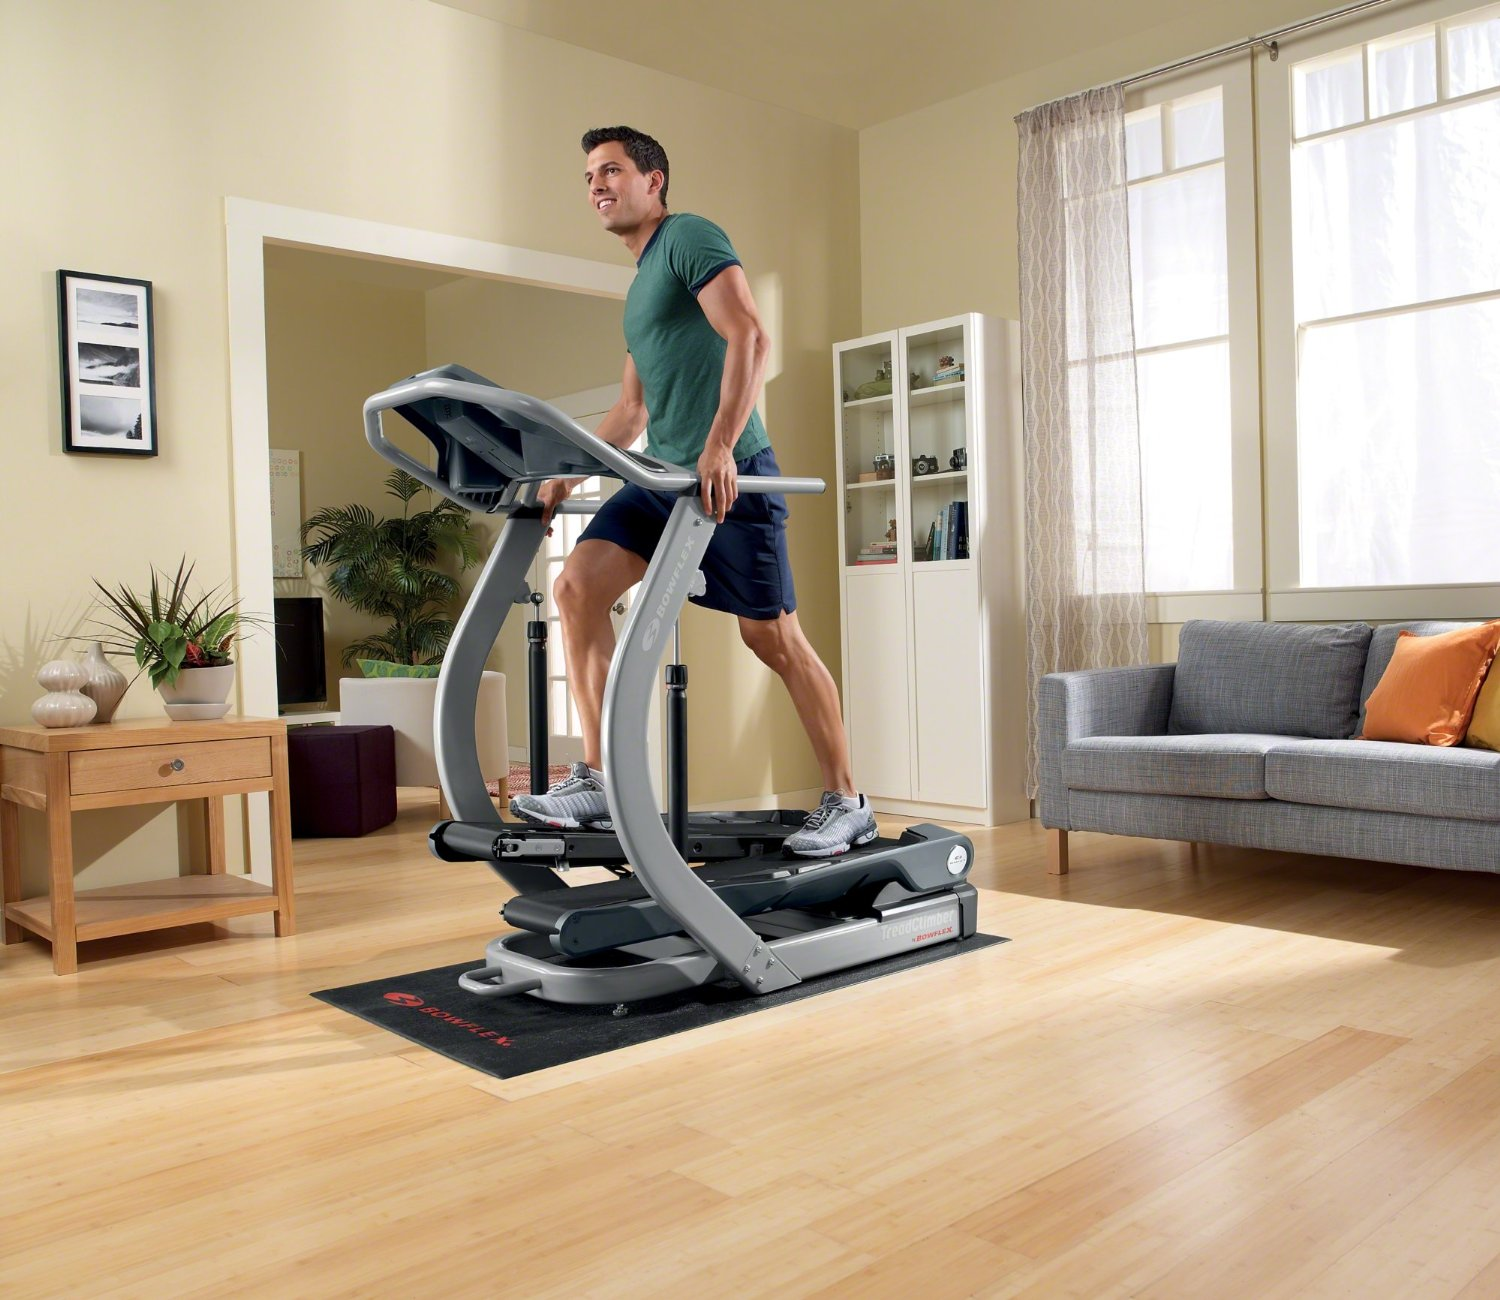 Bowflex Treadclimber Weight Loss Reviews: The Good, The Bad And Review